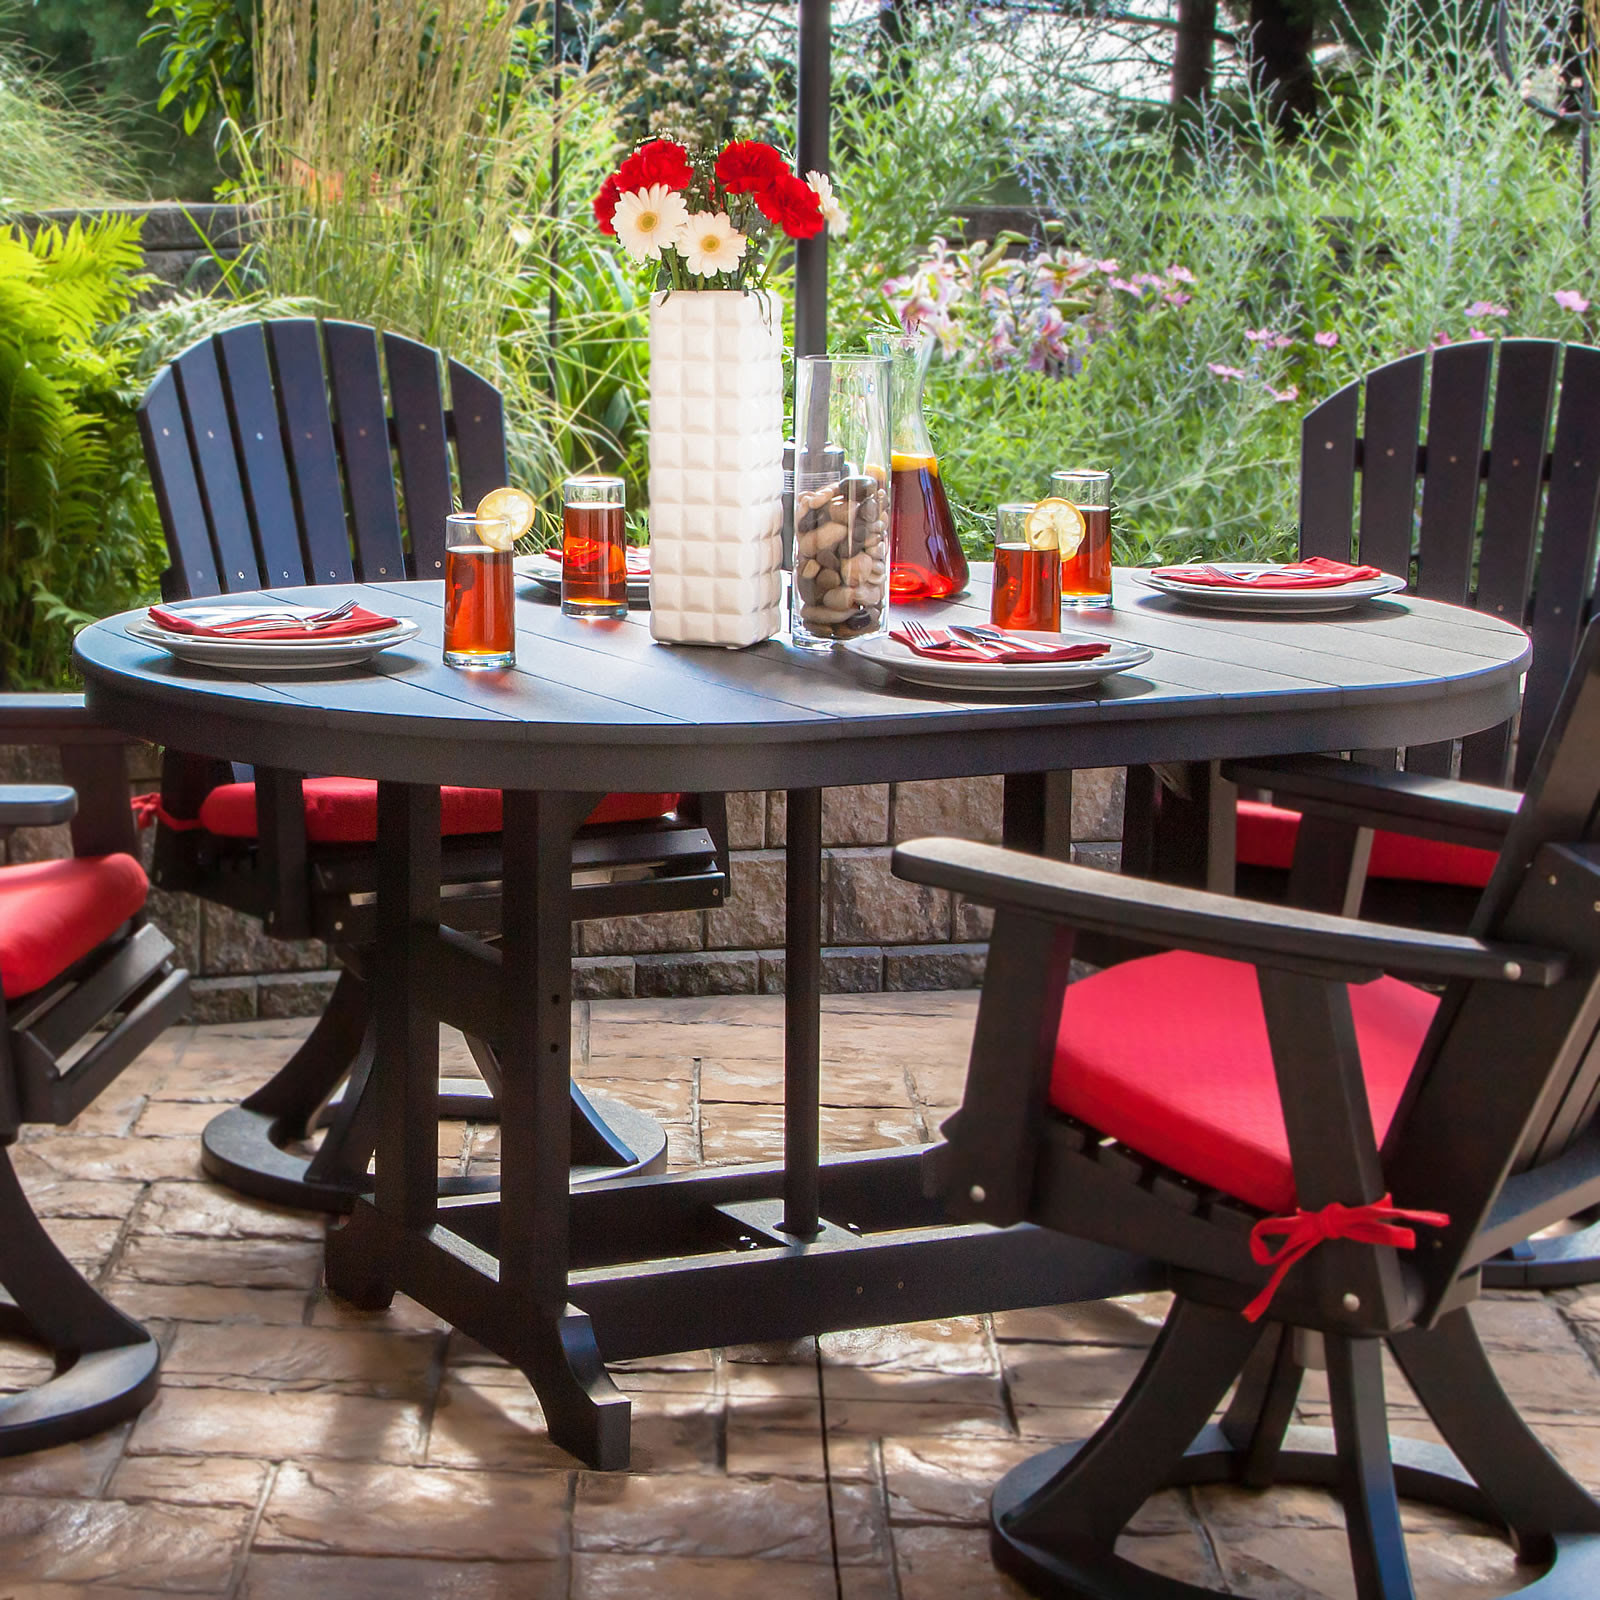 Garden Classic 44 x 64 in Oval Table - Dining, Counter or ...